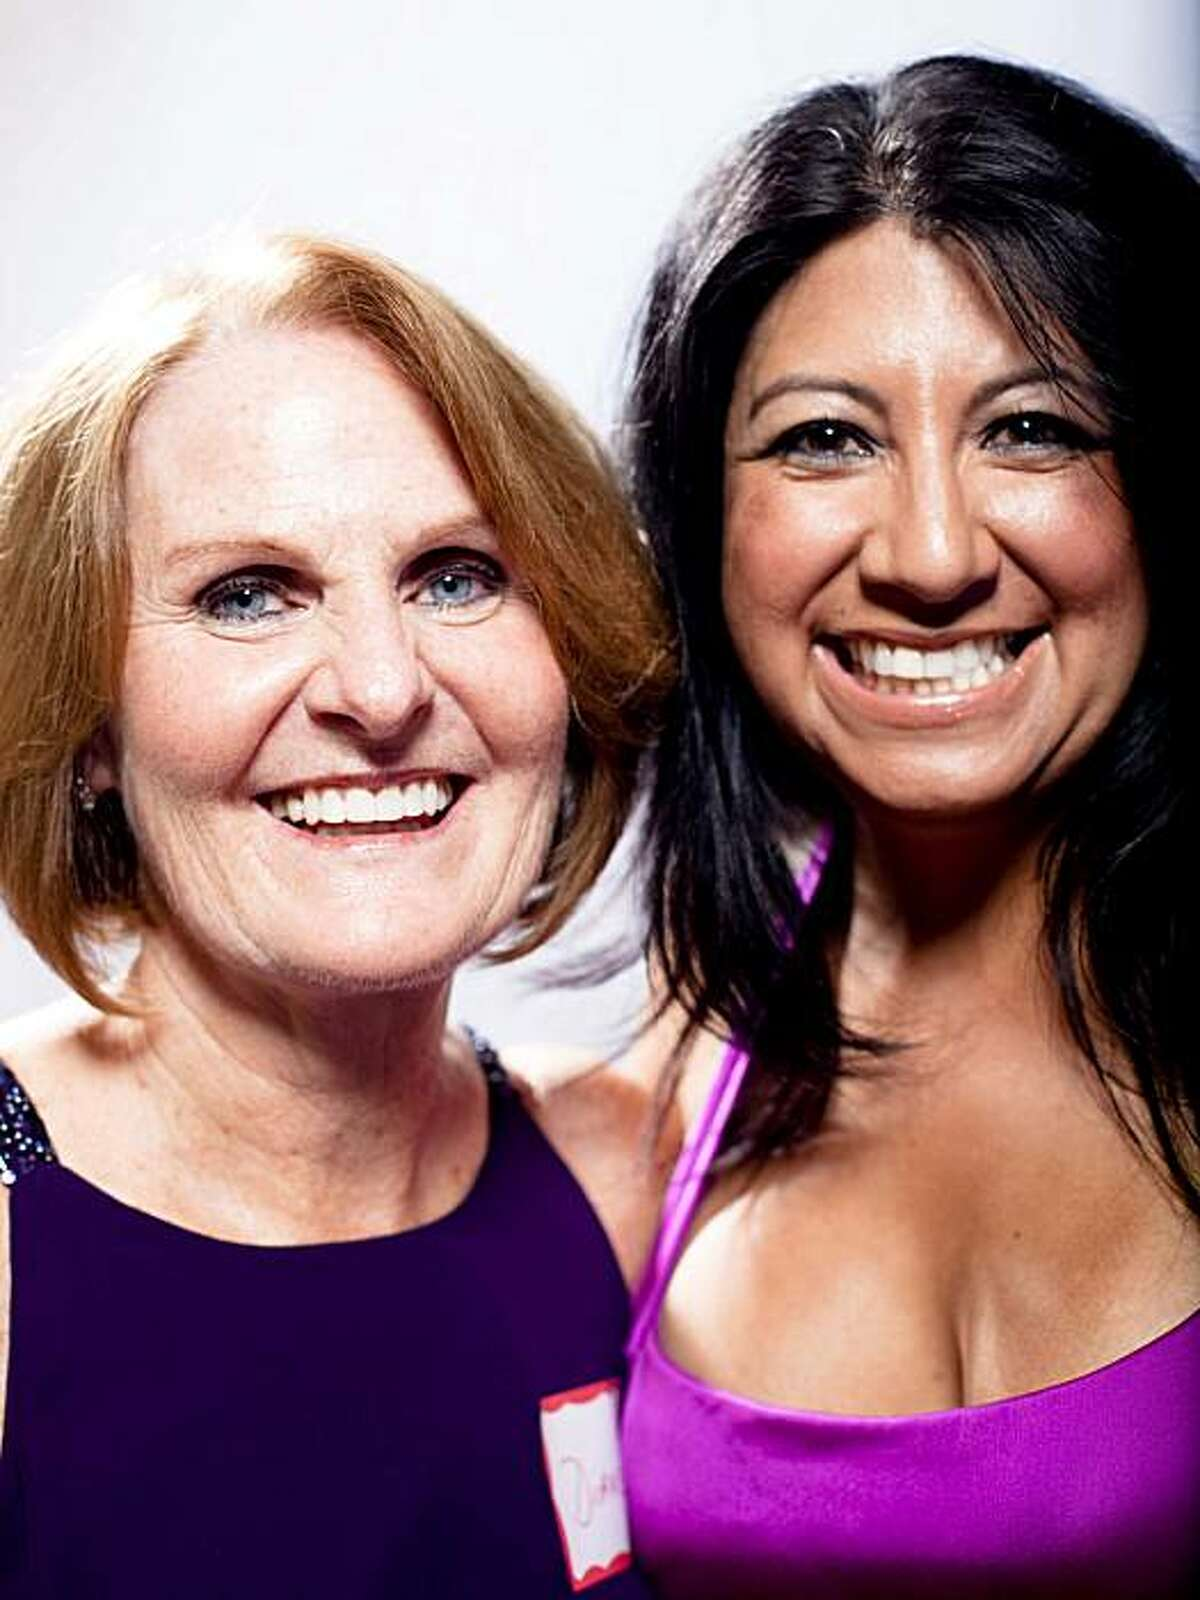 """Miss Cougar America, Gloria Navarro, 42, right, and friend Diane Caselli, 62, at the Cougar Convention. """"She was determined to win,"""" said Caselli."""